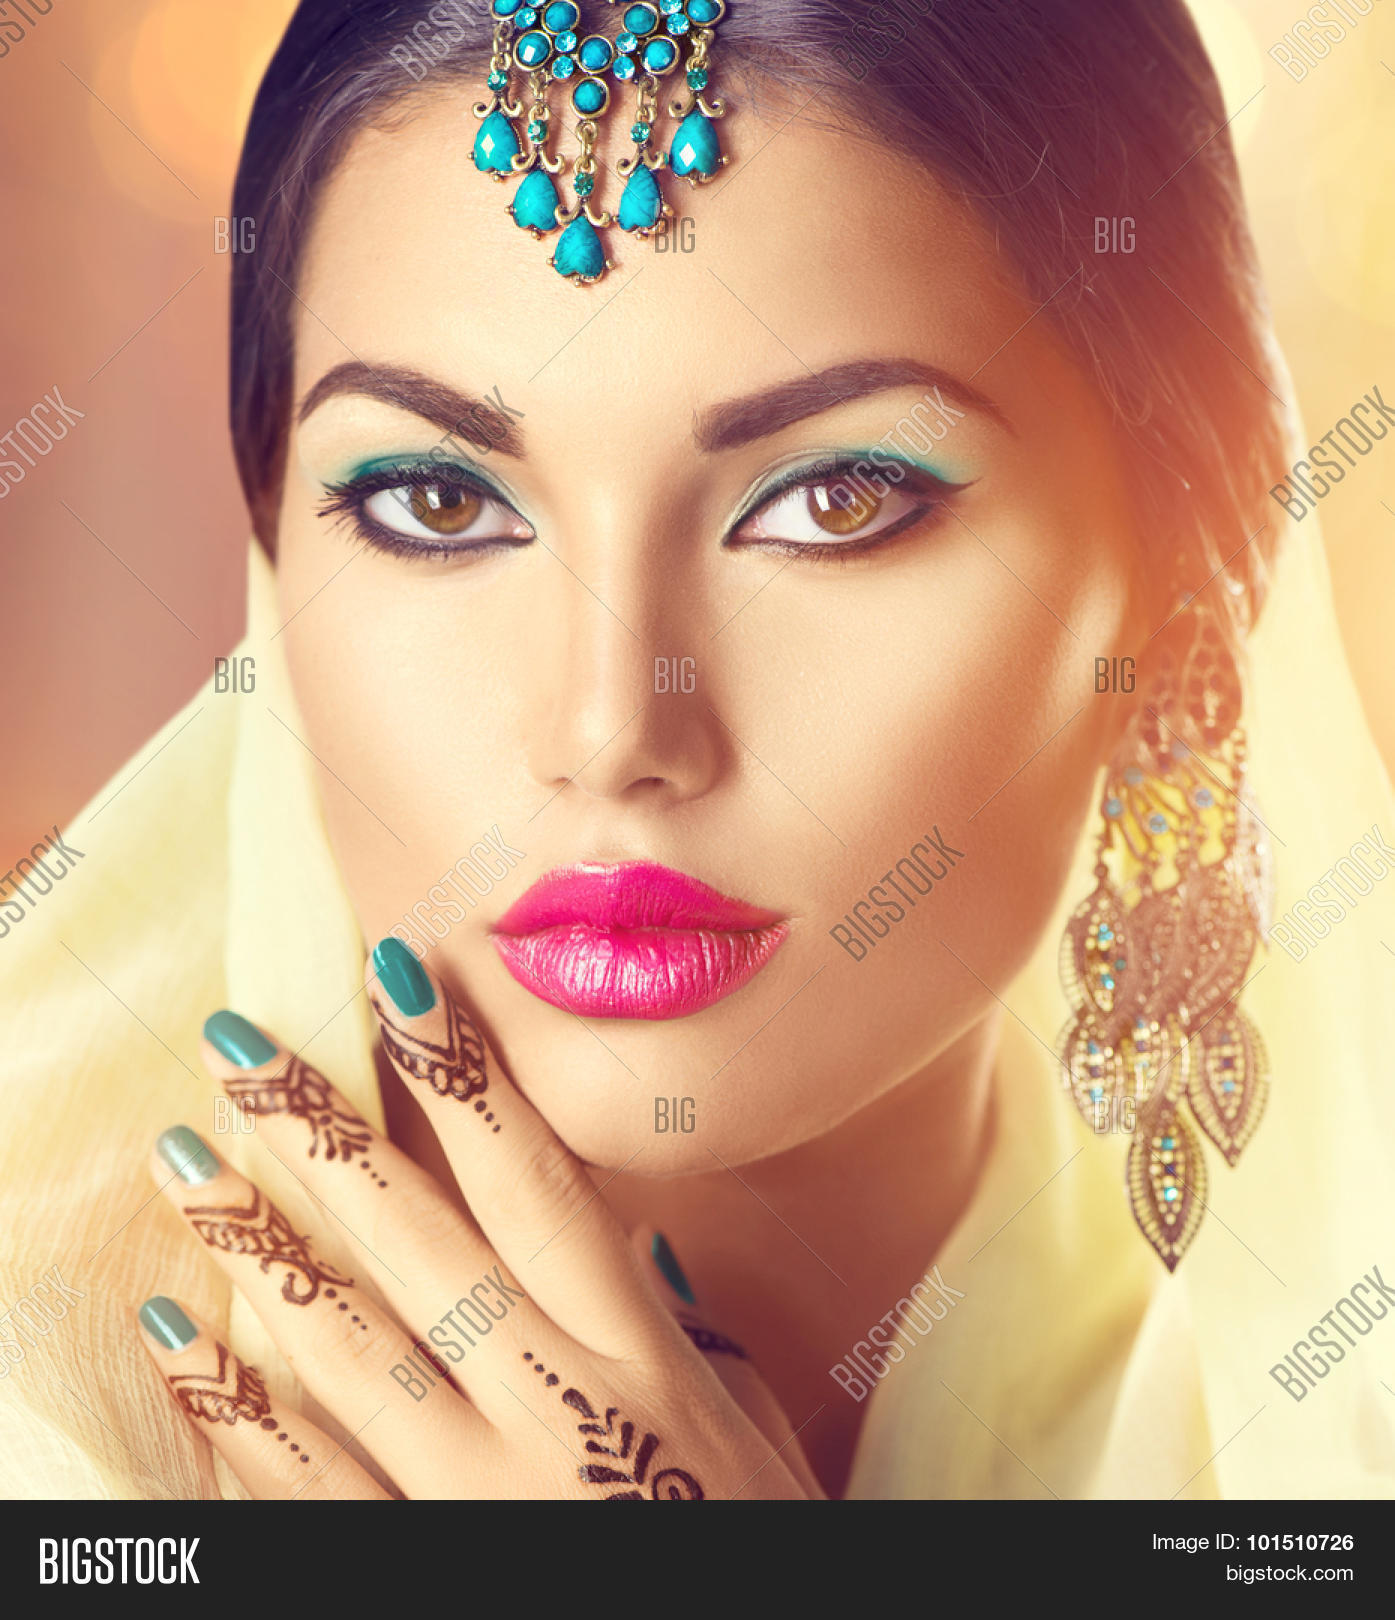 hindu single women in harvel Free to join & browse - 1000's of indian women - interracial dating for men & women - black, white, latino, asian, everyone.